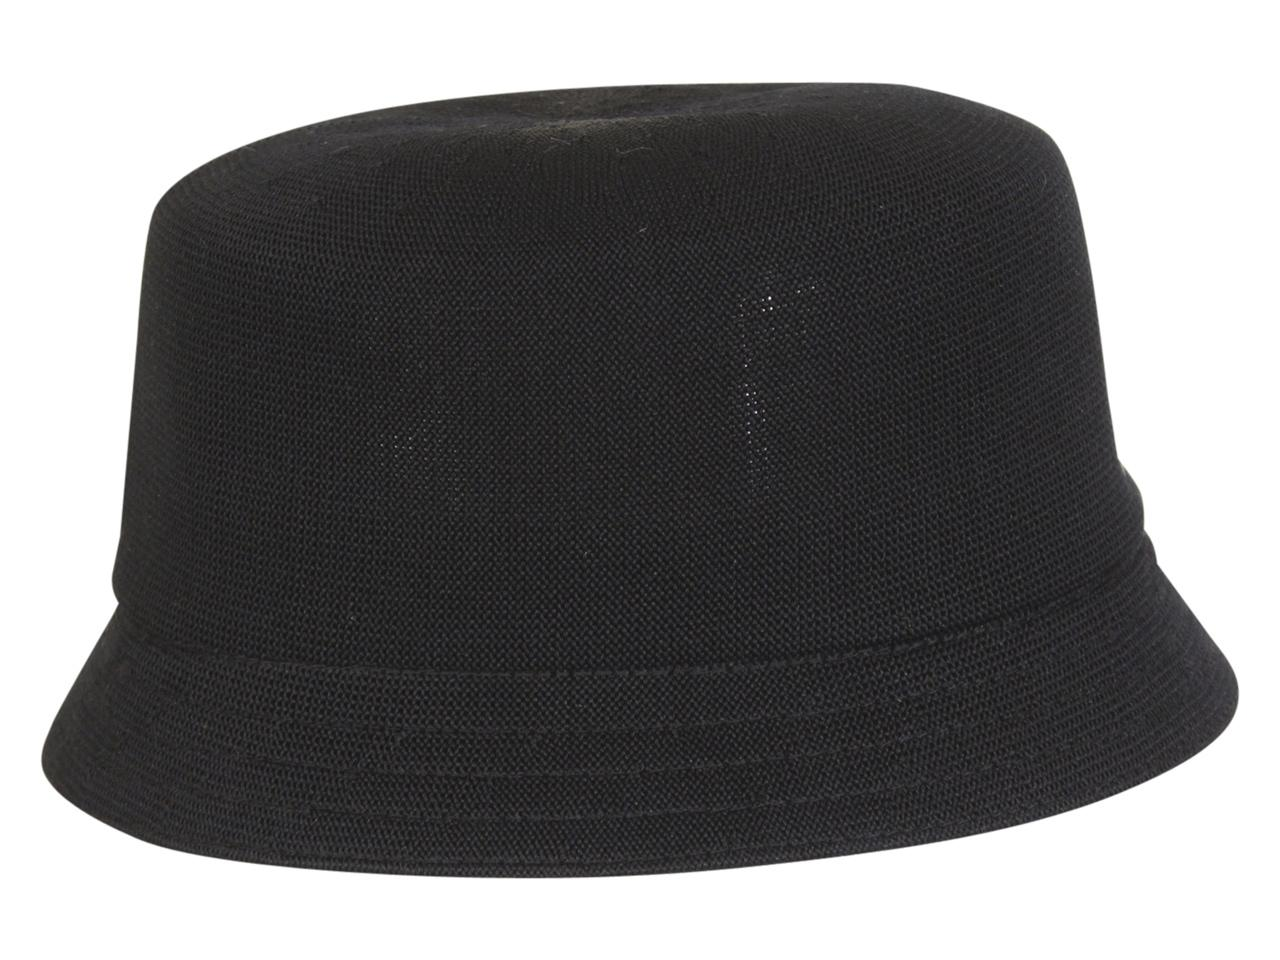 3778deef3 Kangol Men's Tropic Bin Bucket Hat